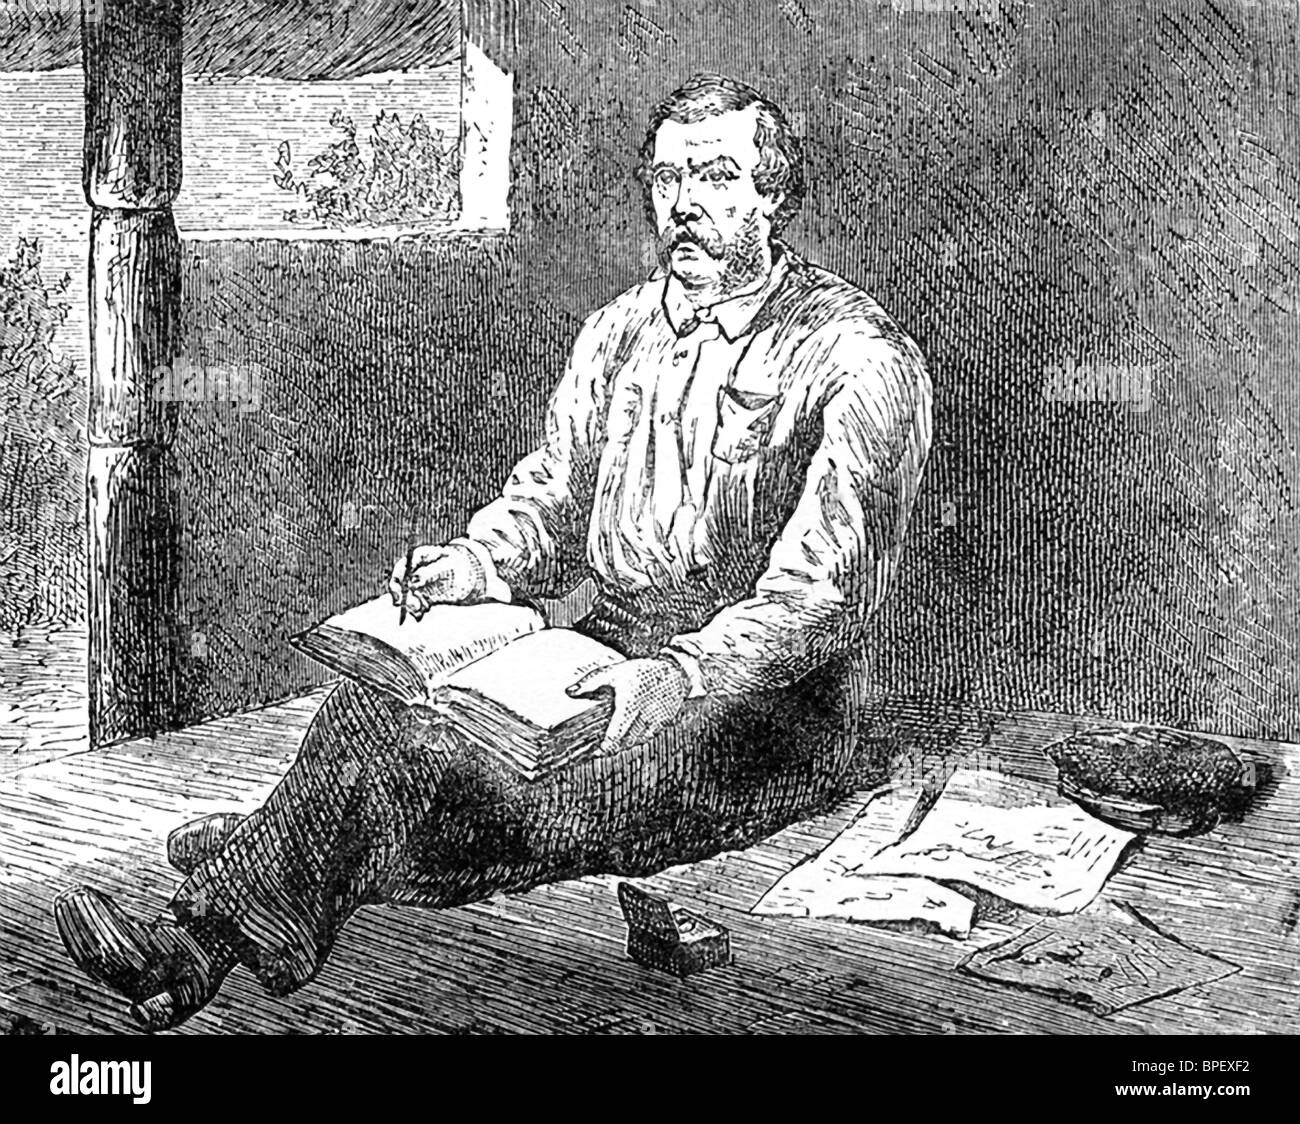 British Explorer Henry Morton Stanley Made This Sketch Of David Livingstone,  Scottish Missionary And Explorer In Africa  Dr Livingstone I Presume Movie